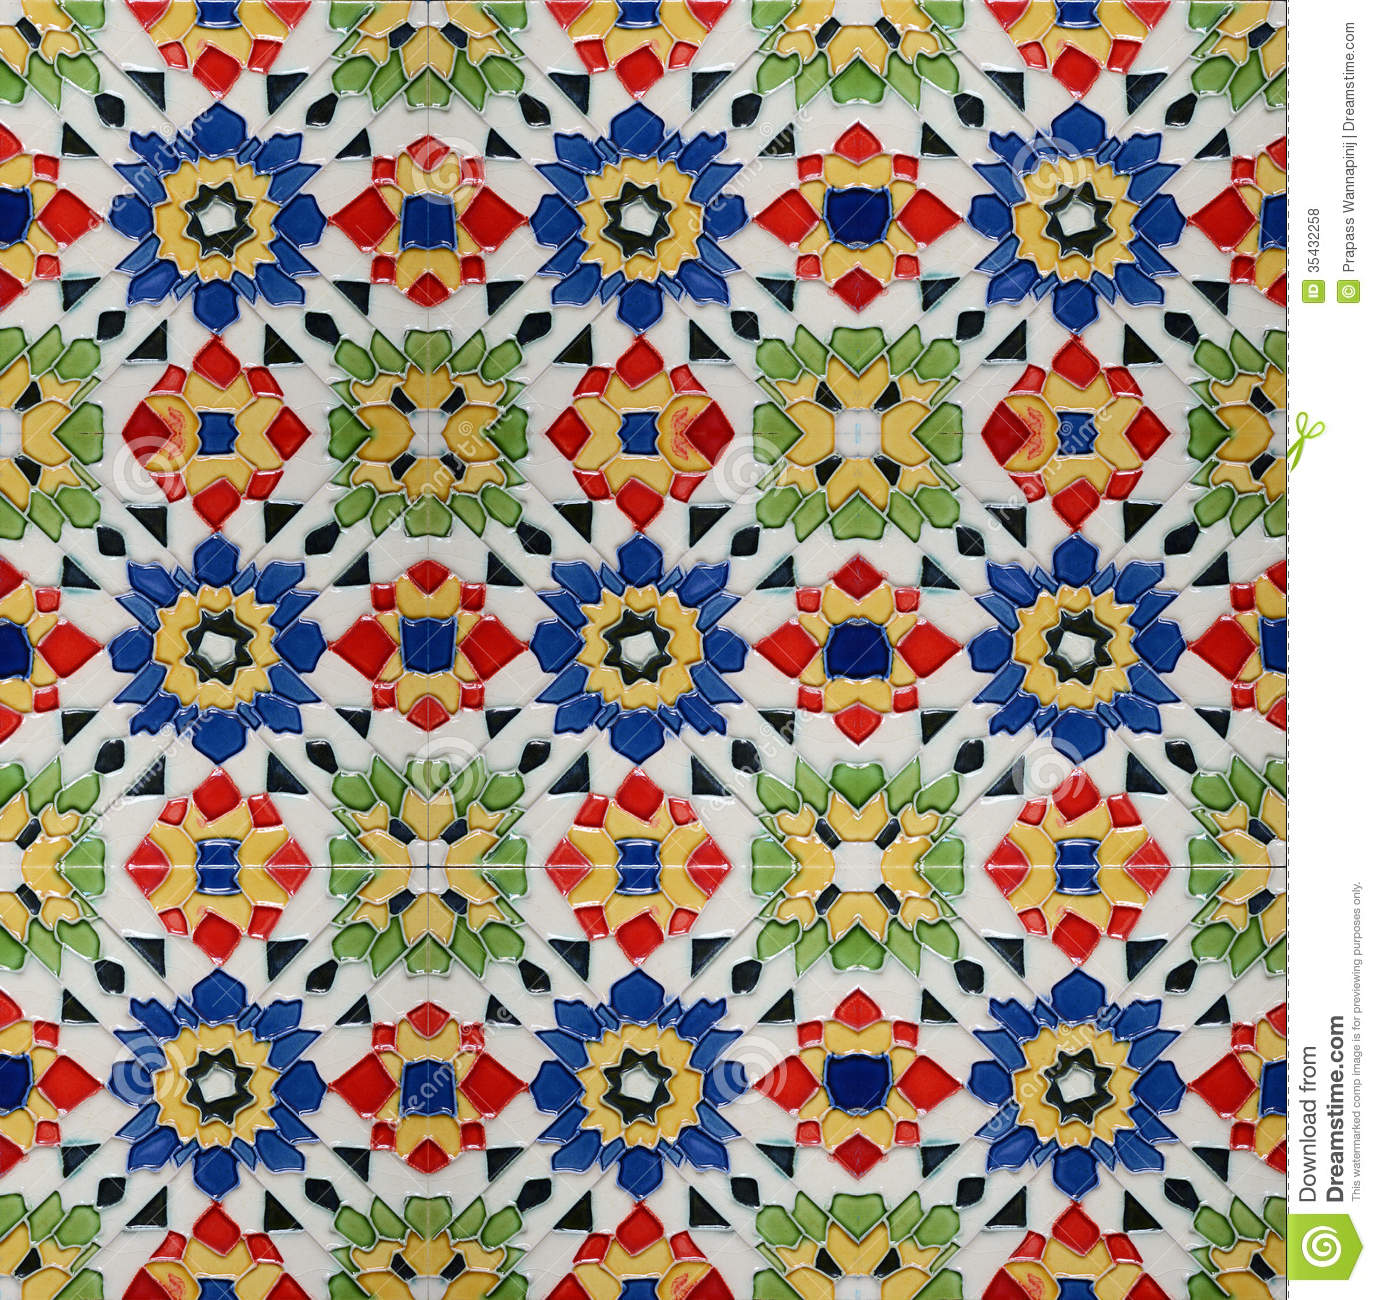 Spanich Moroccan Style Vintage Ceramic Tile Stock Photo - Image of ...